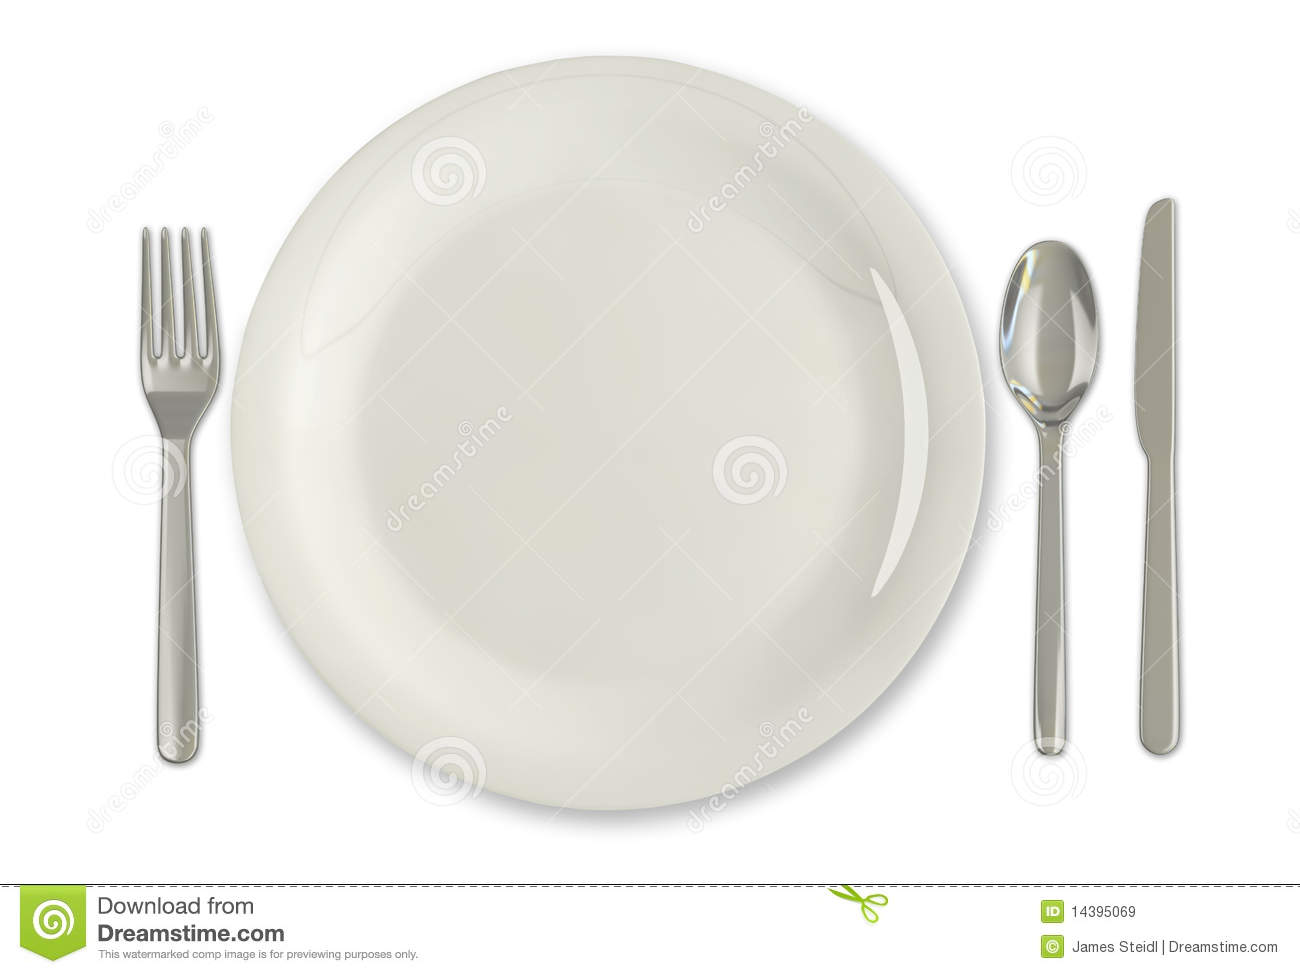 Plate and utensils royalty free stock images image 14395069 for Place setting images